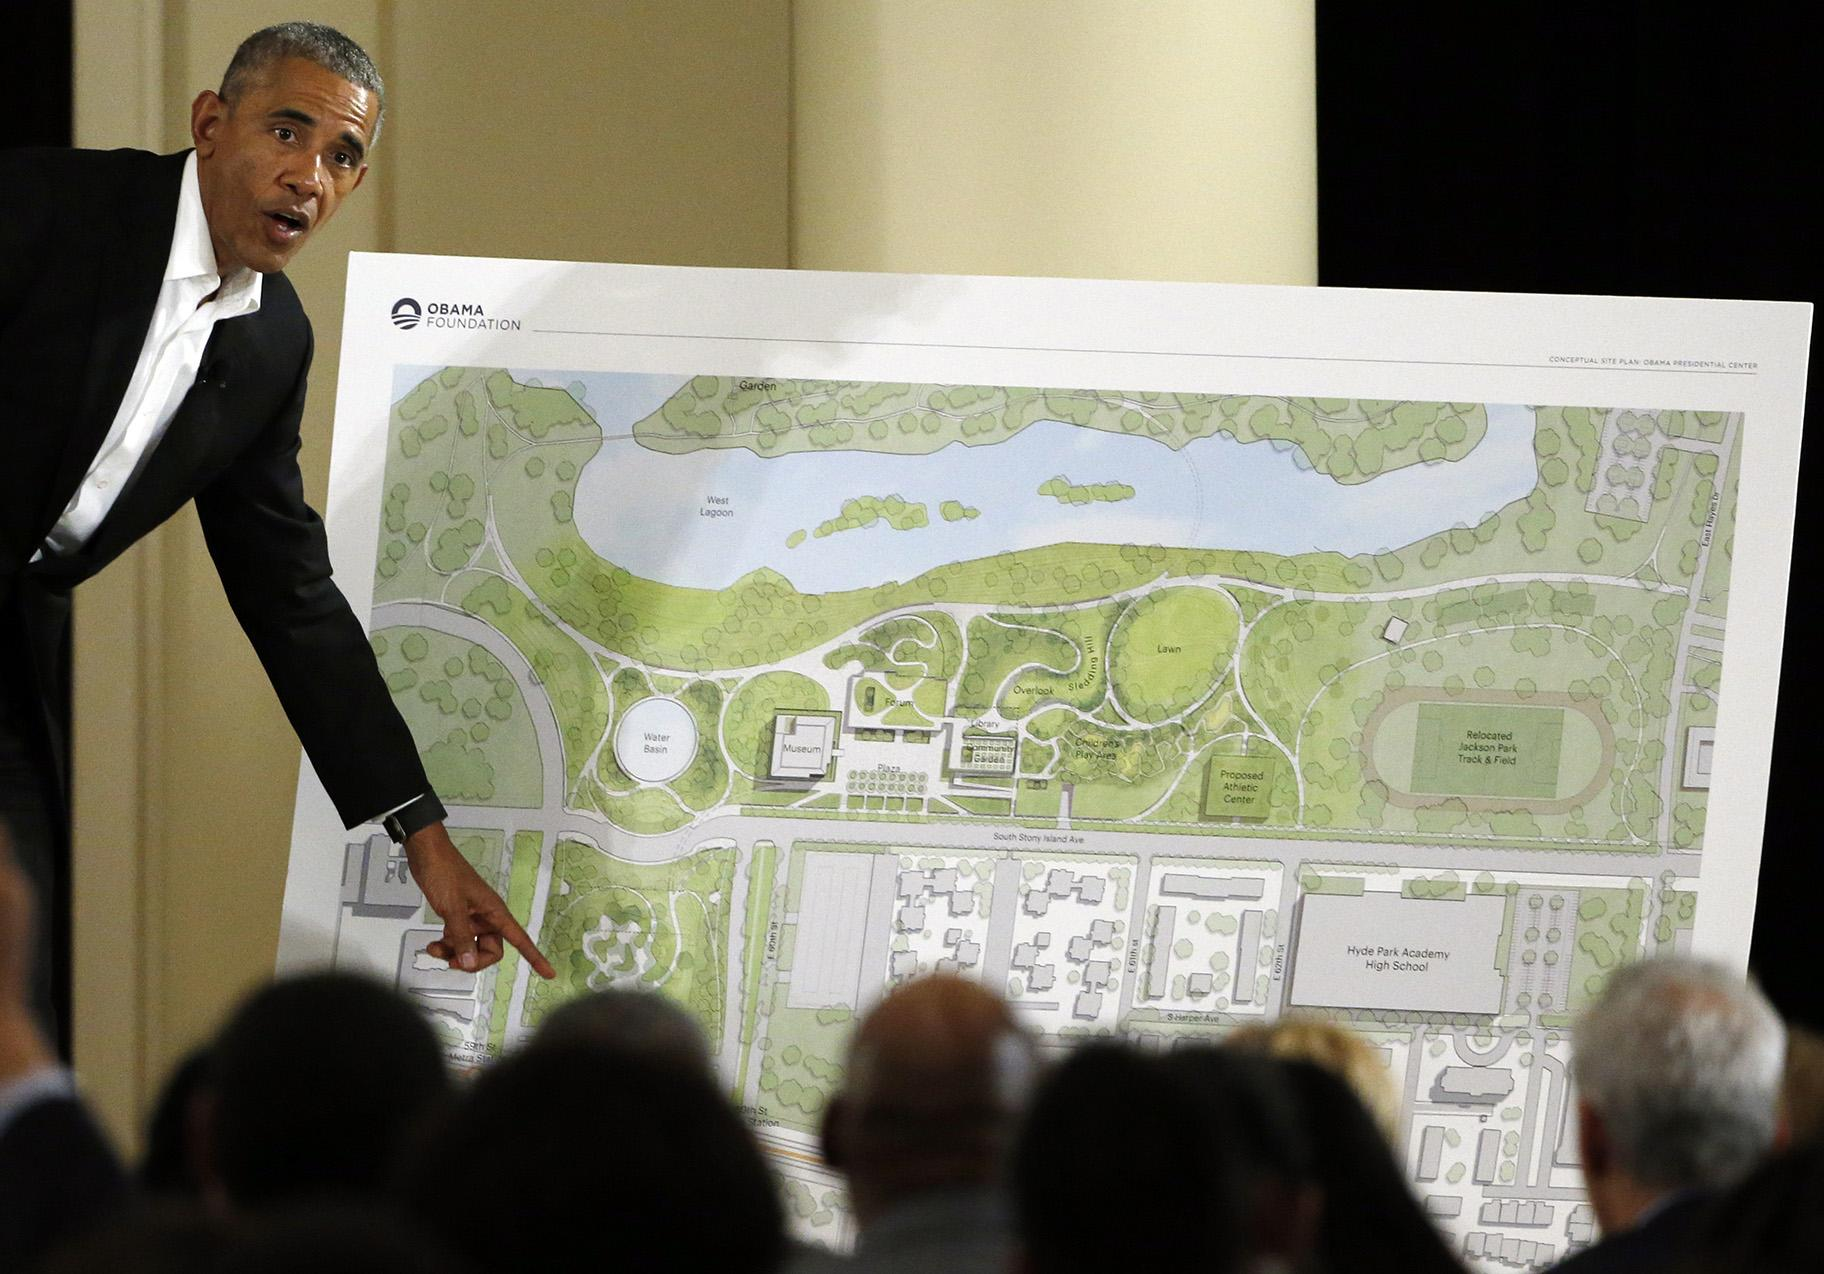 In this May 3, 2017 file photo, former President Barack Obama speaks at a community event on the Presidential Center at the South Shore Cultural Center in Chicago. (AP Photo / Nam Y. Huh, File)